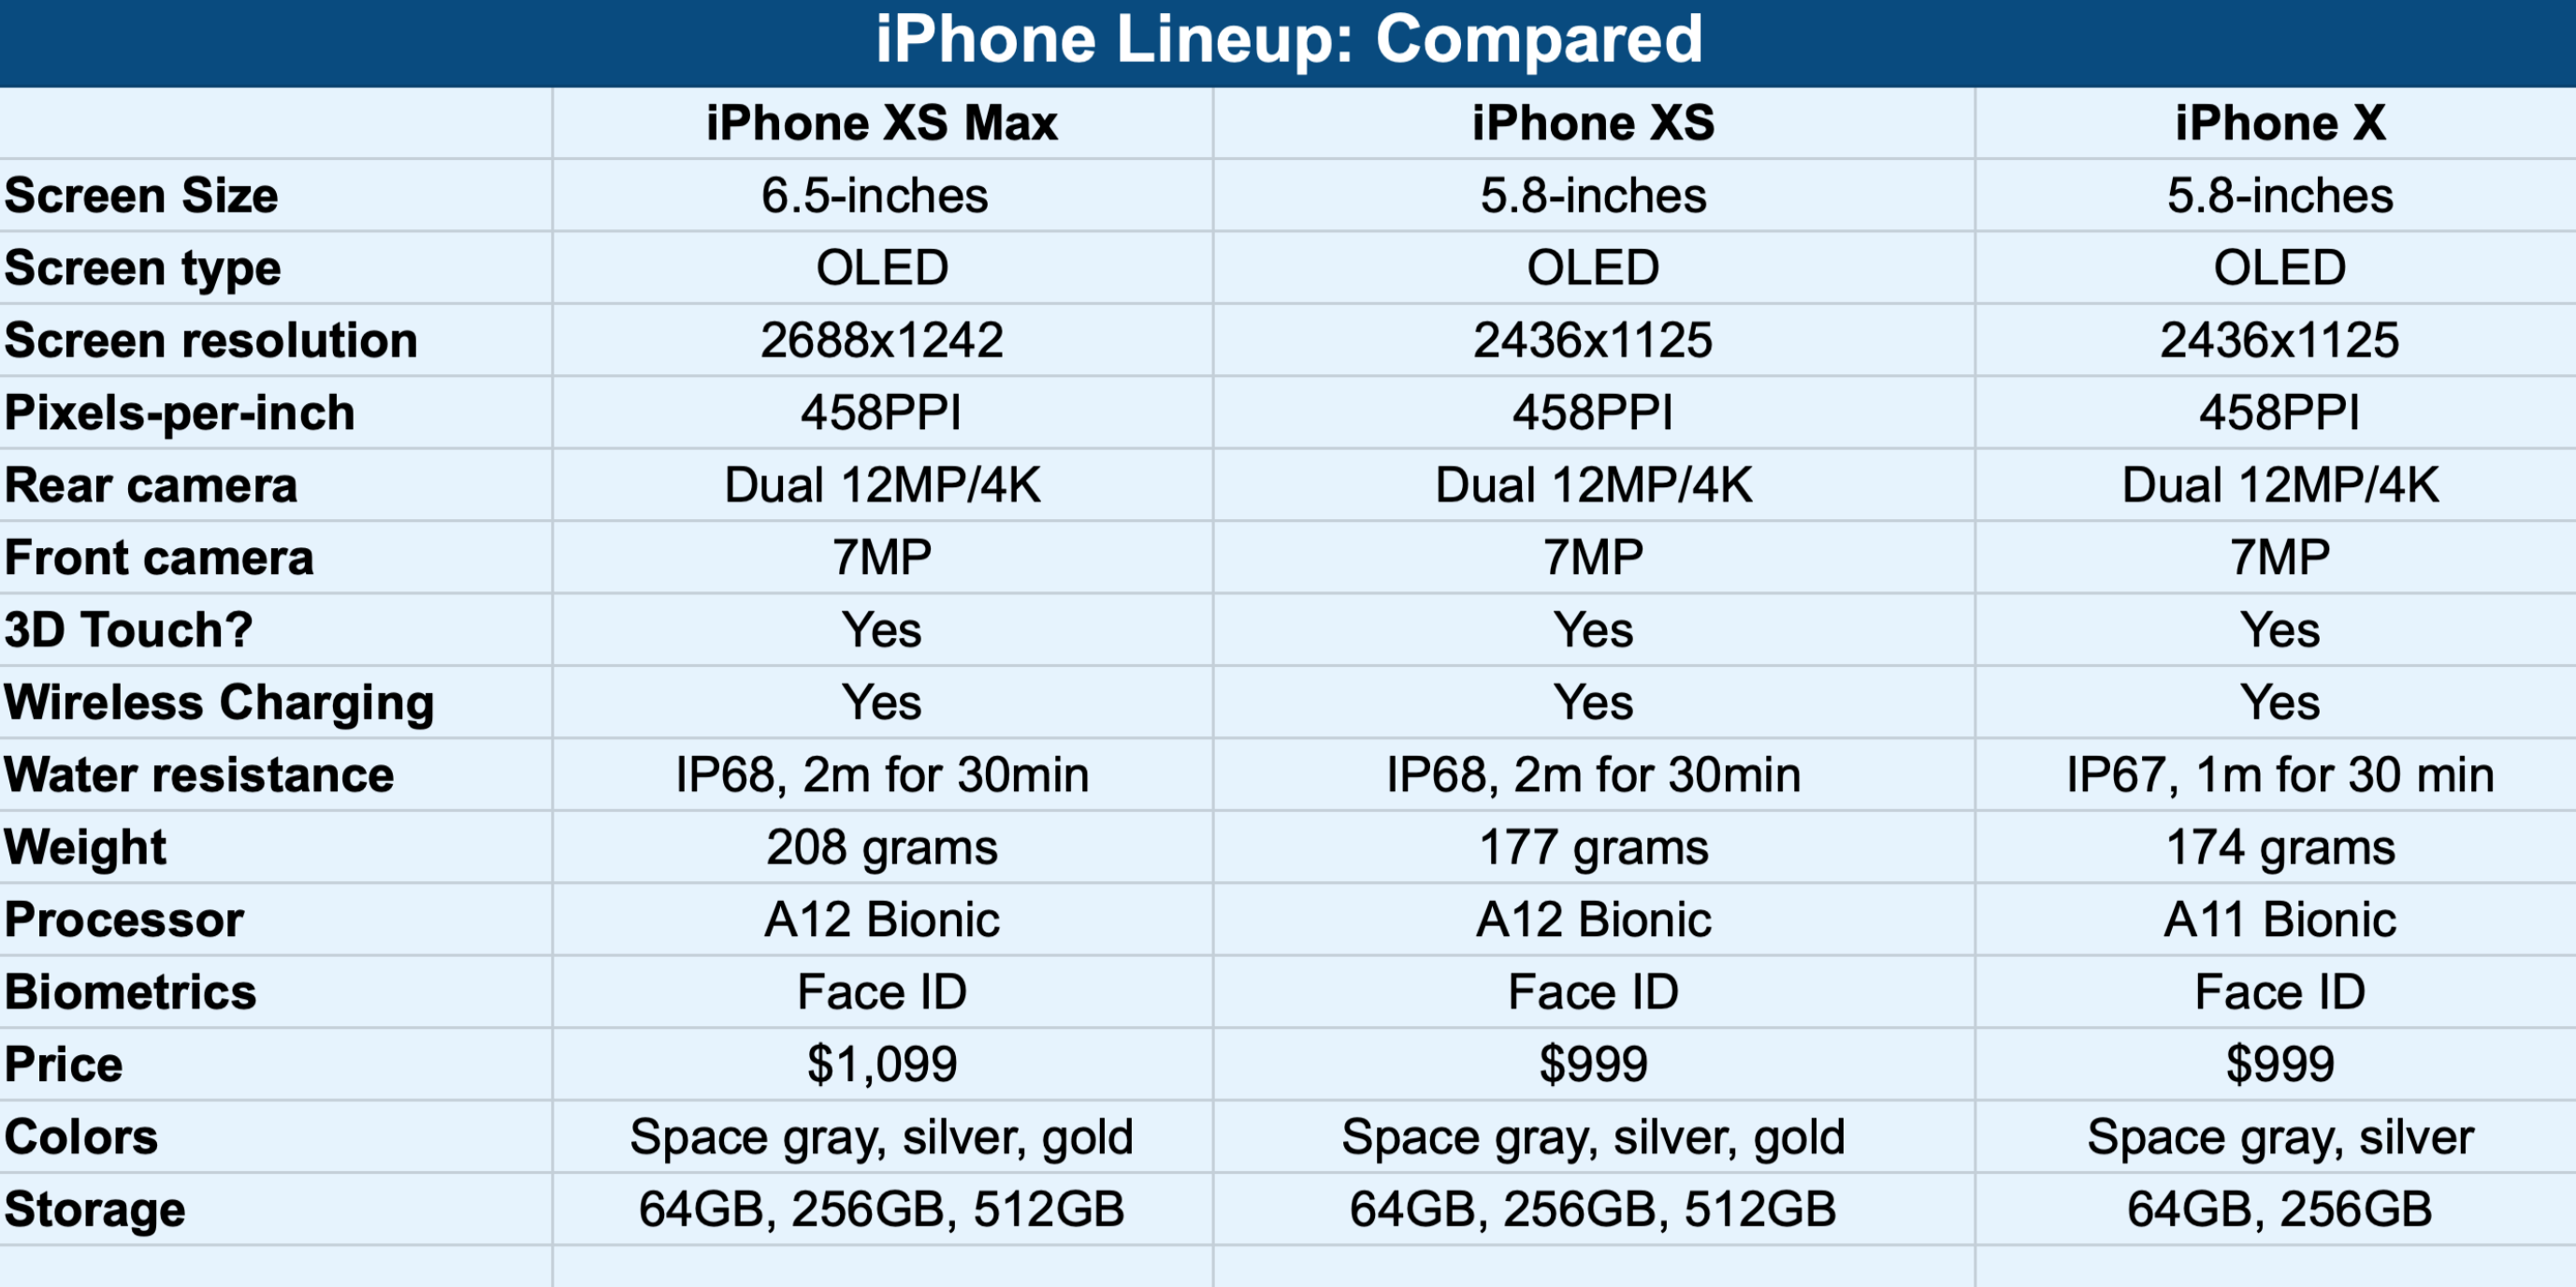 diff between iphone x and xs max